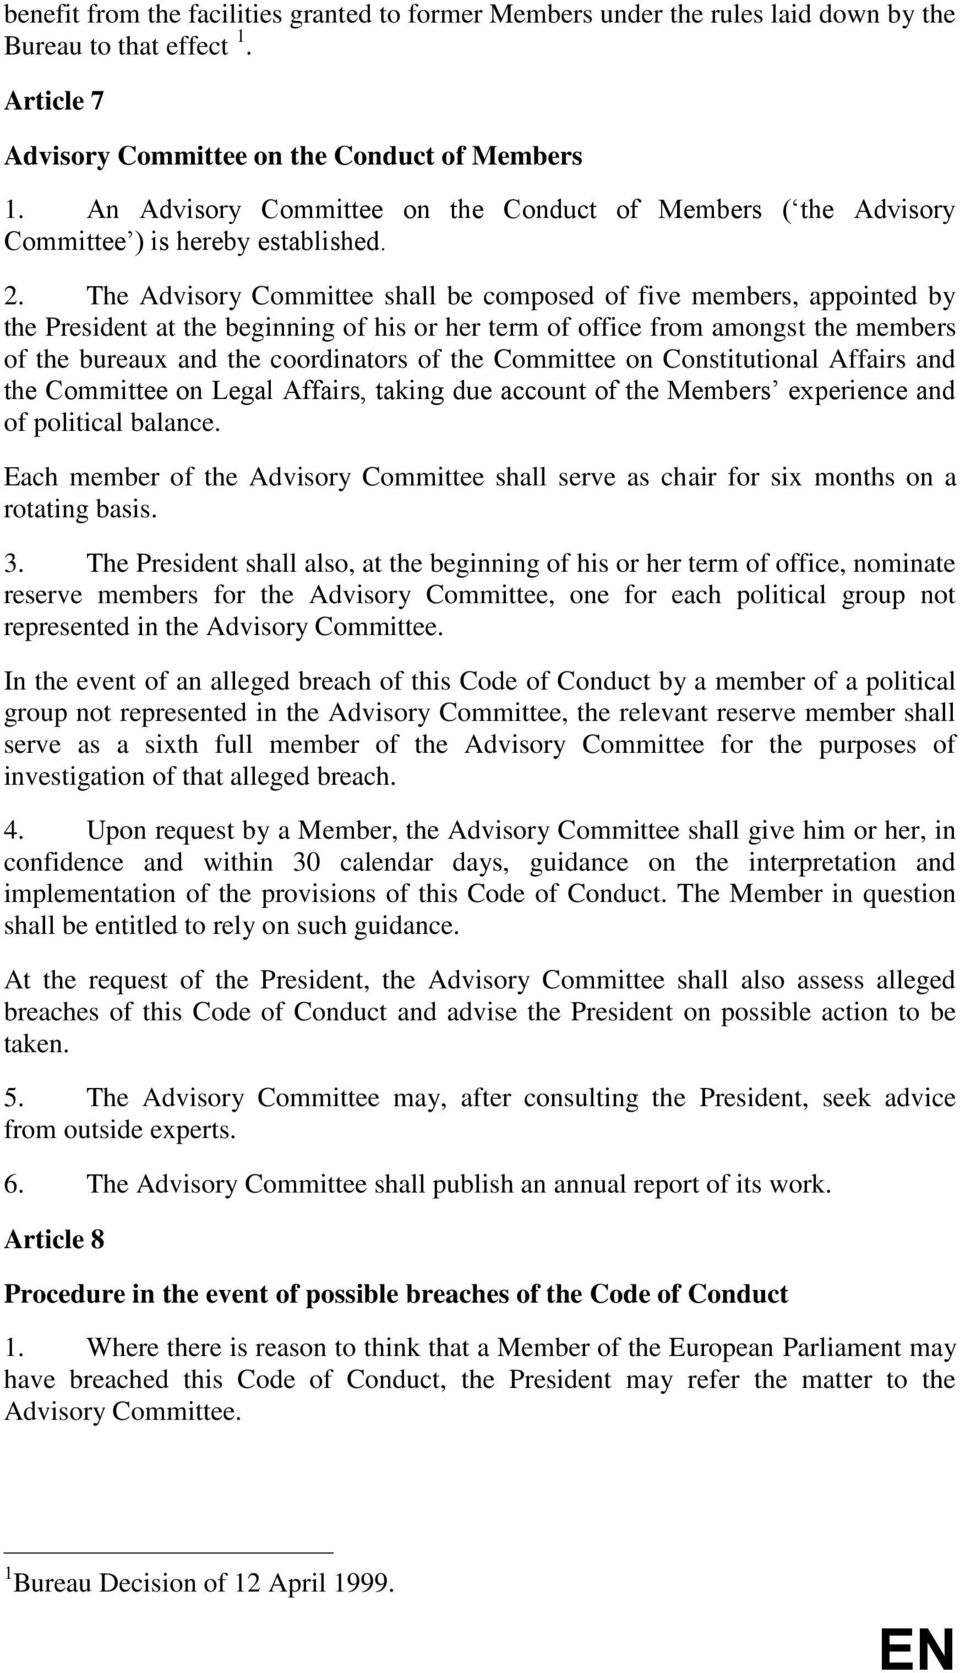 The Advisory Committee shall be composed of five members, appointed by the President at the beginning of his or her term of office from amongst the members of the bureaux and the coordinators of the